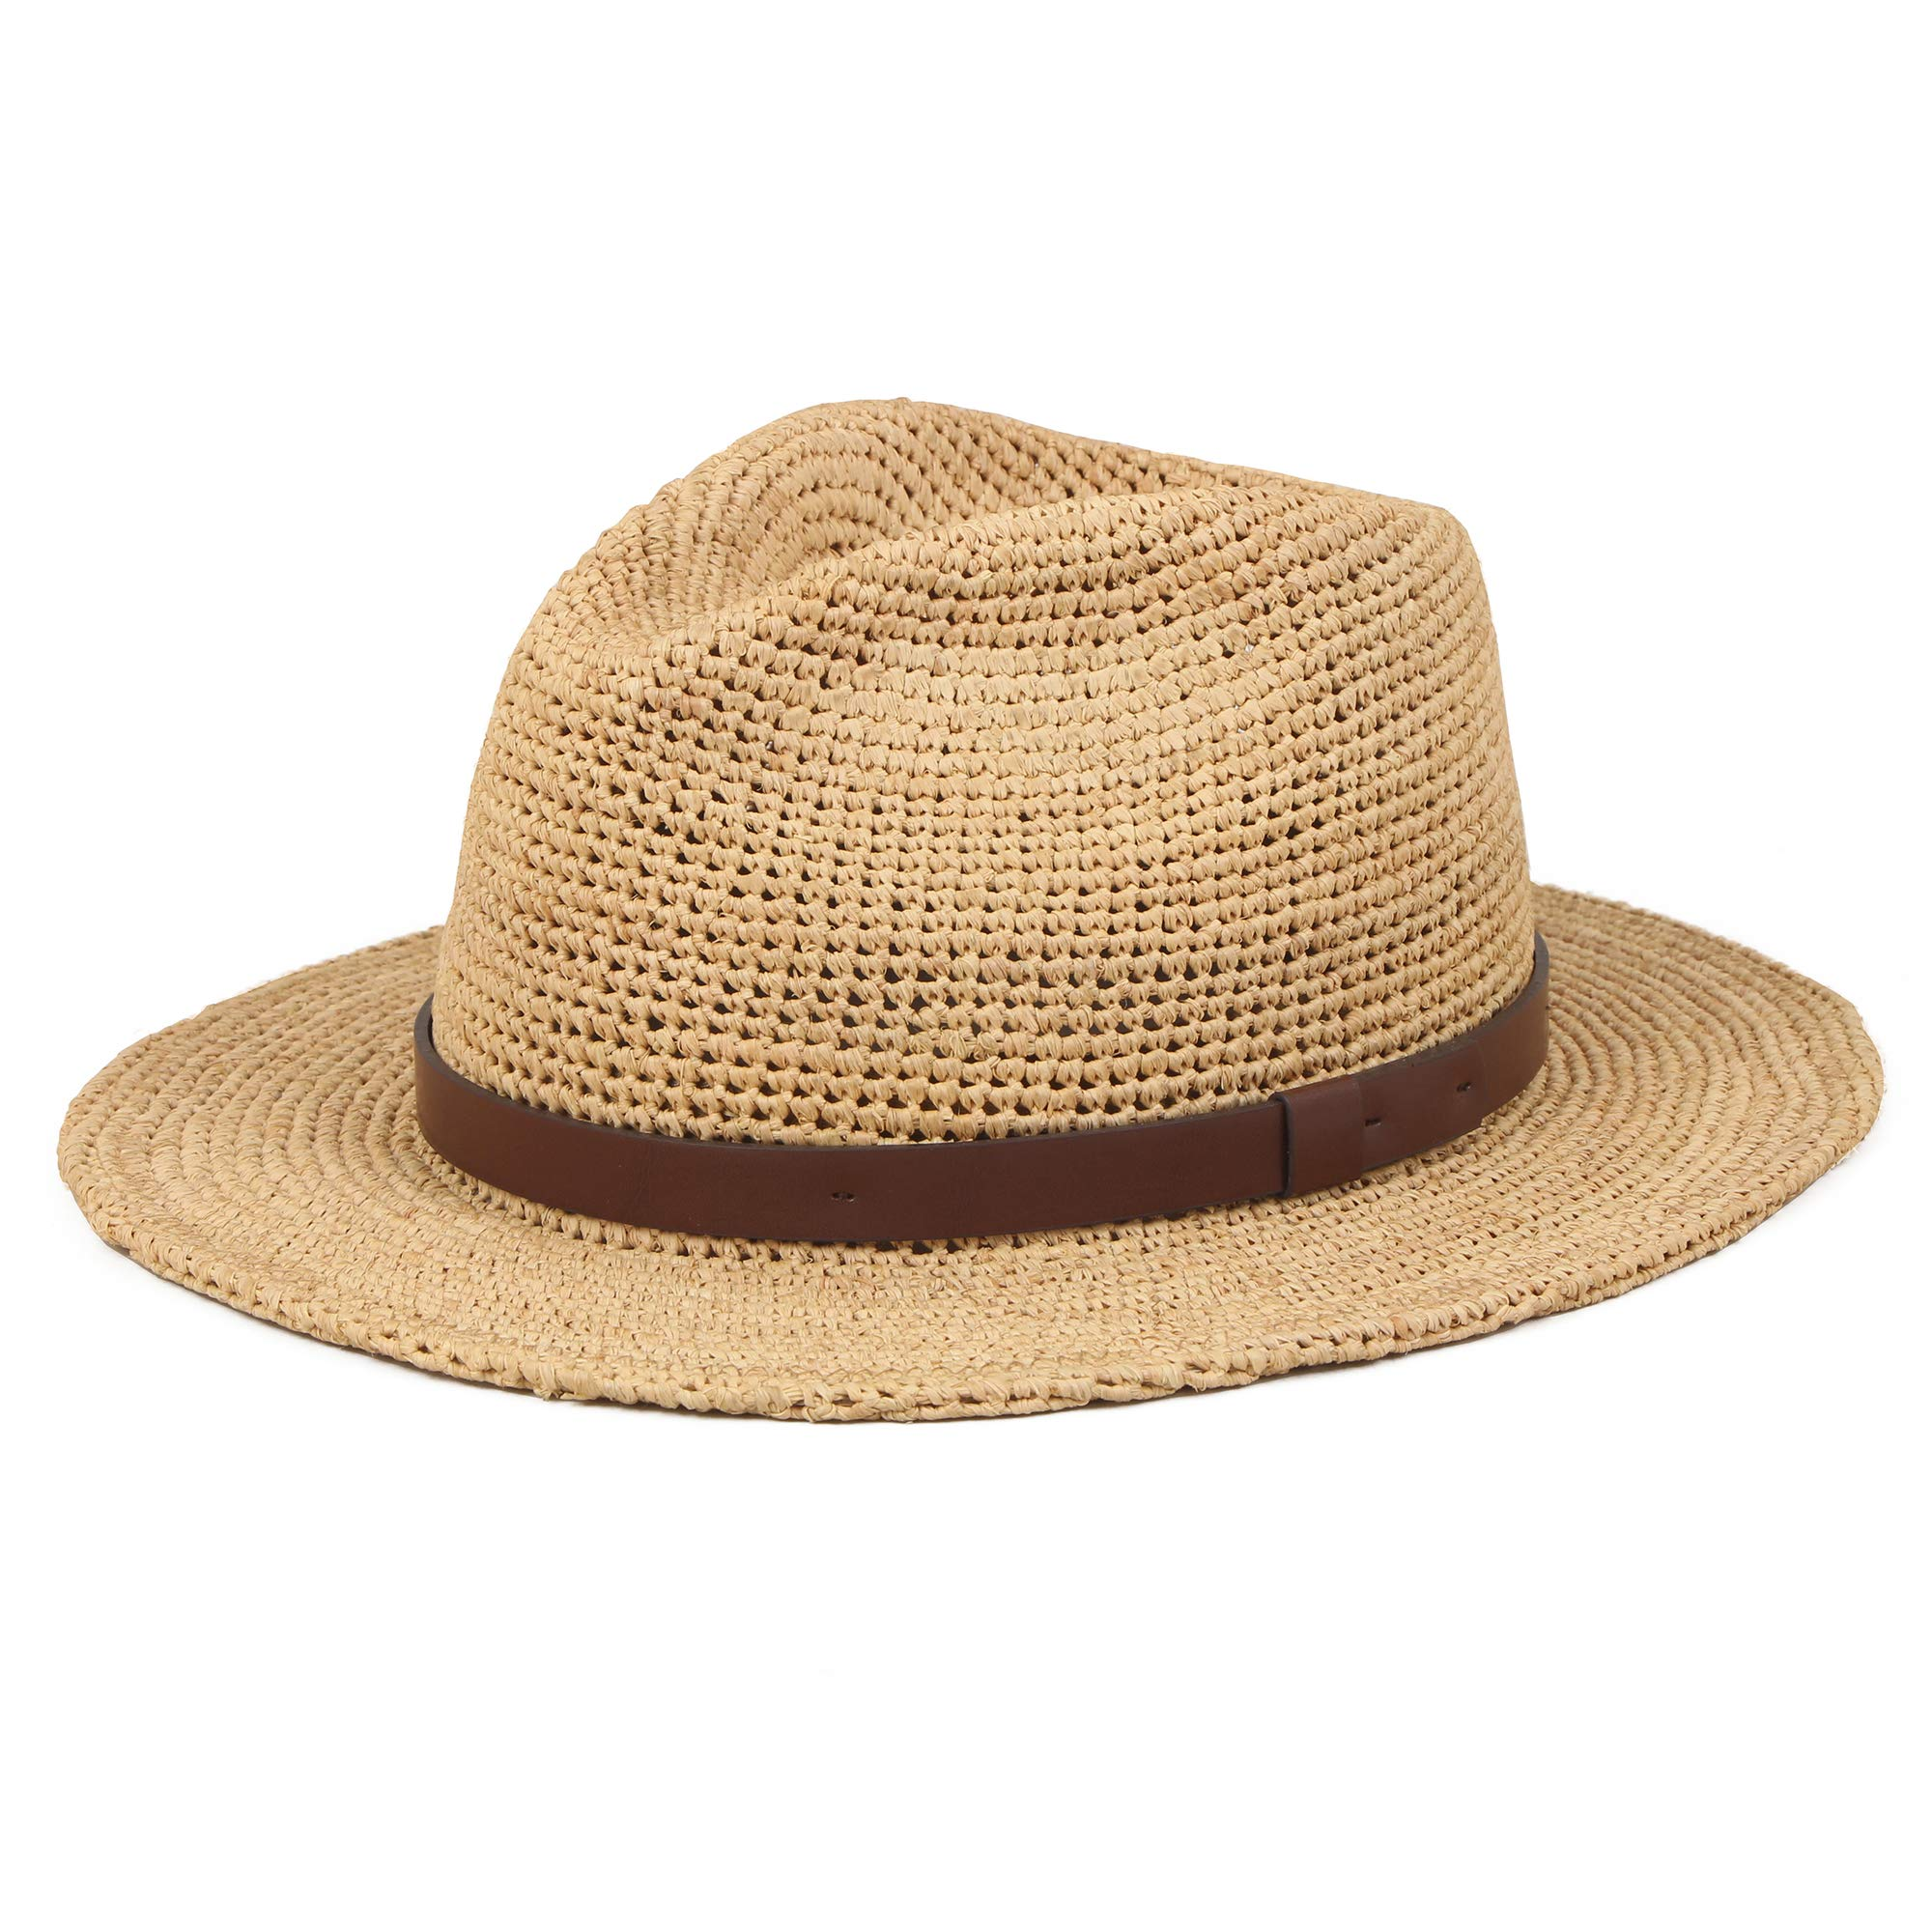 Unisex Sun Raffia Straw Panama Handmade Hats Summer Wide Brim Beach Casual Adjustable Trilby Jazz Fedora Hat With UV Protection For Women Men Mix Brown M/L